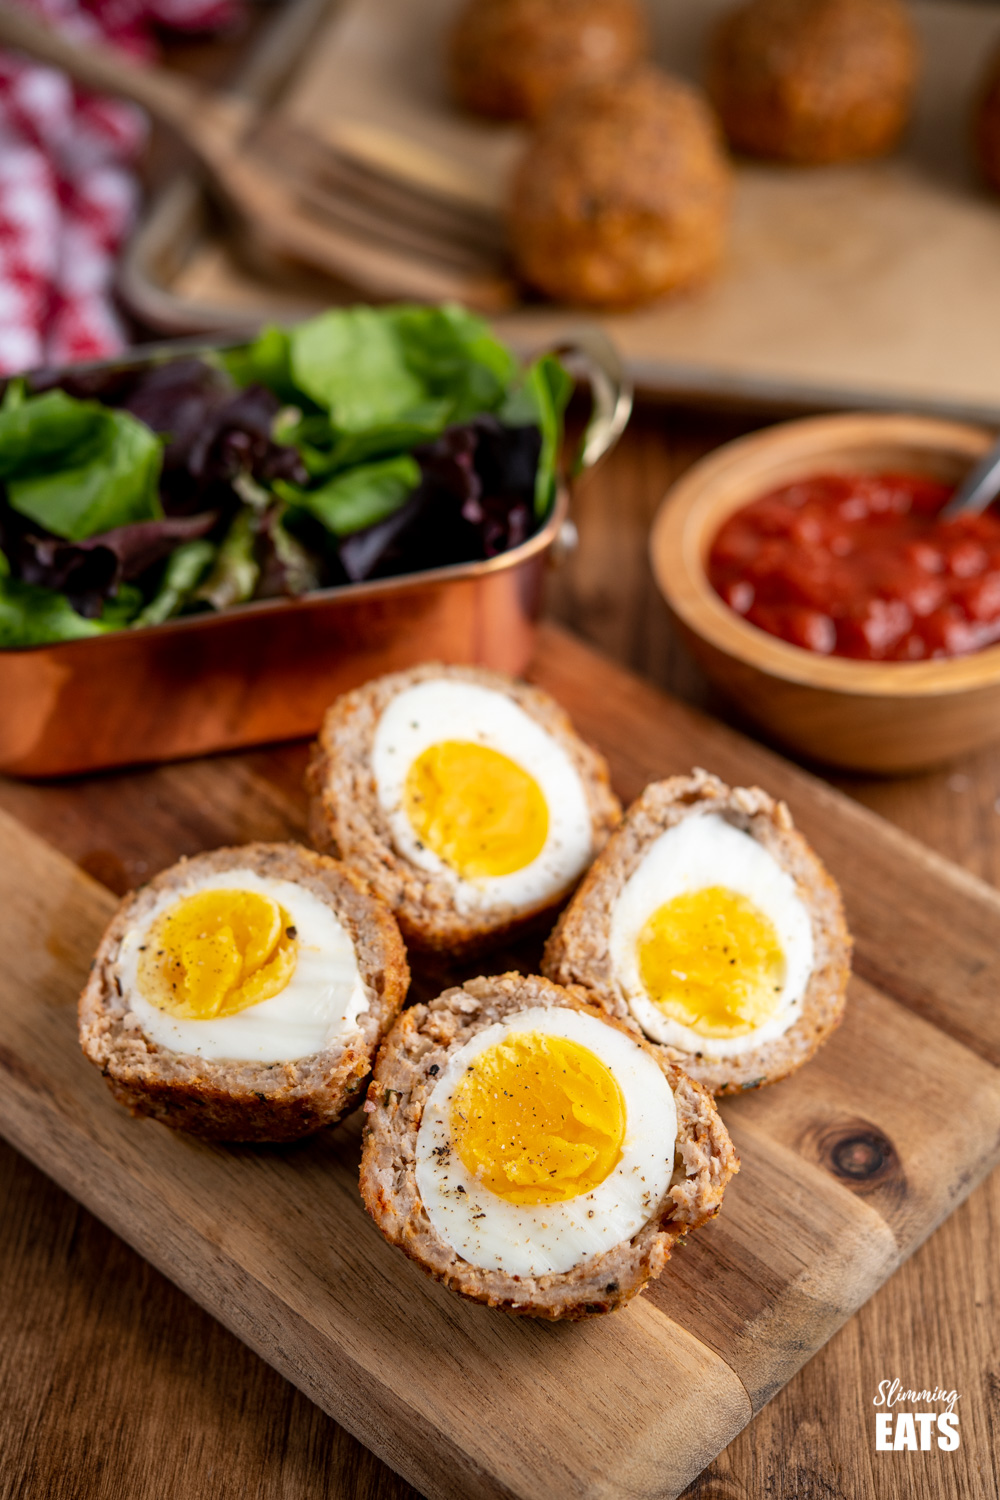 Oven Baked Scotch Eggs sliced in half on a wooden board with salad and relish